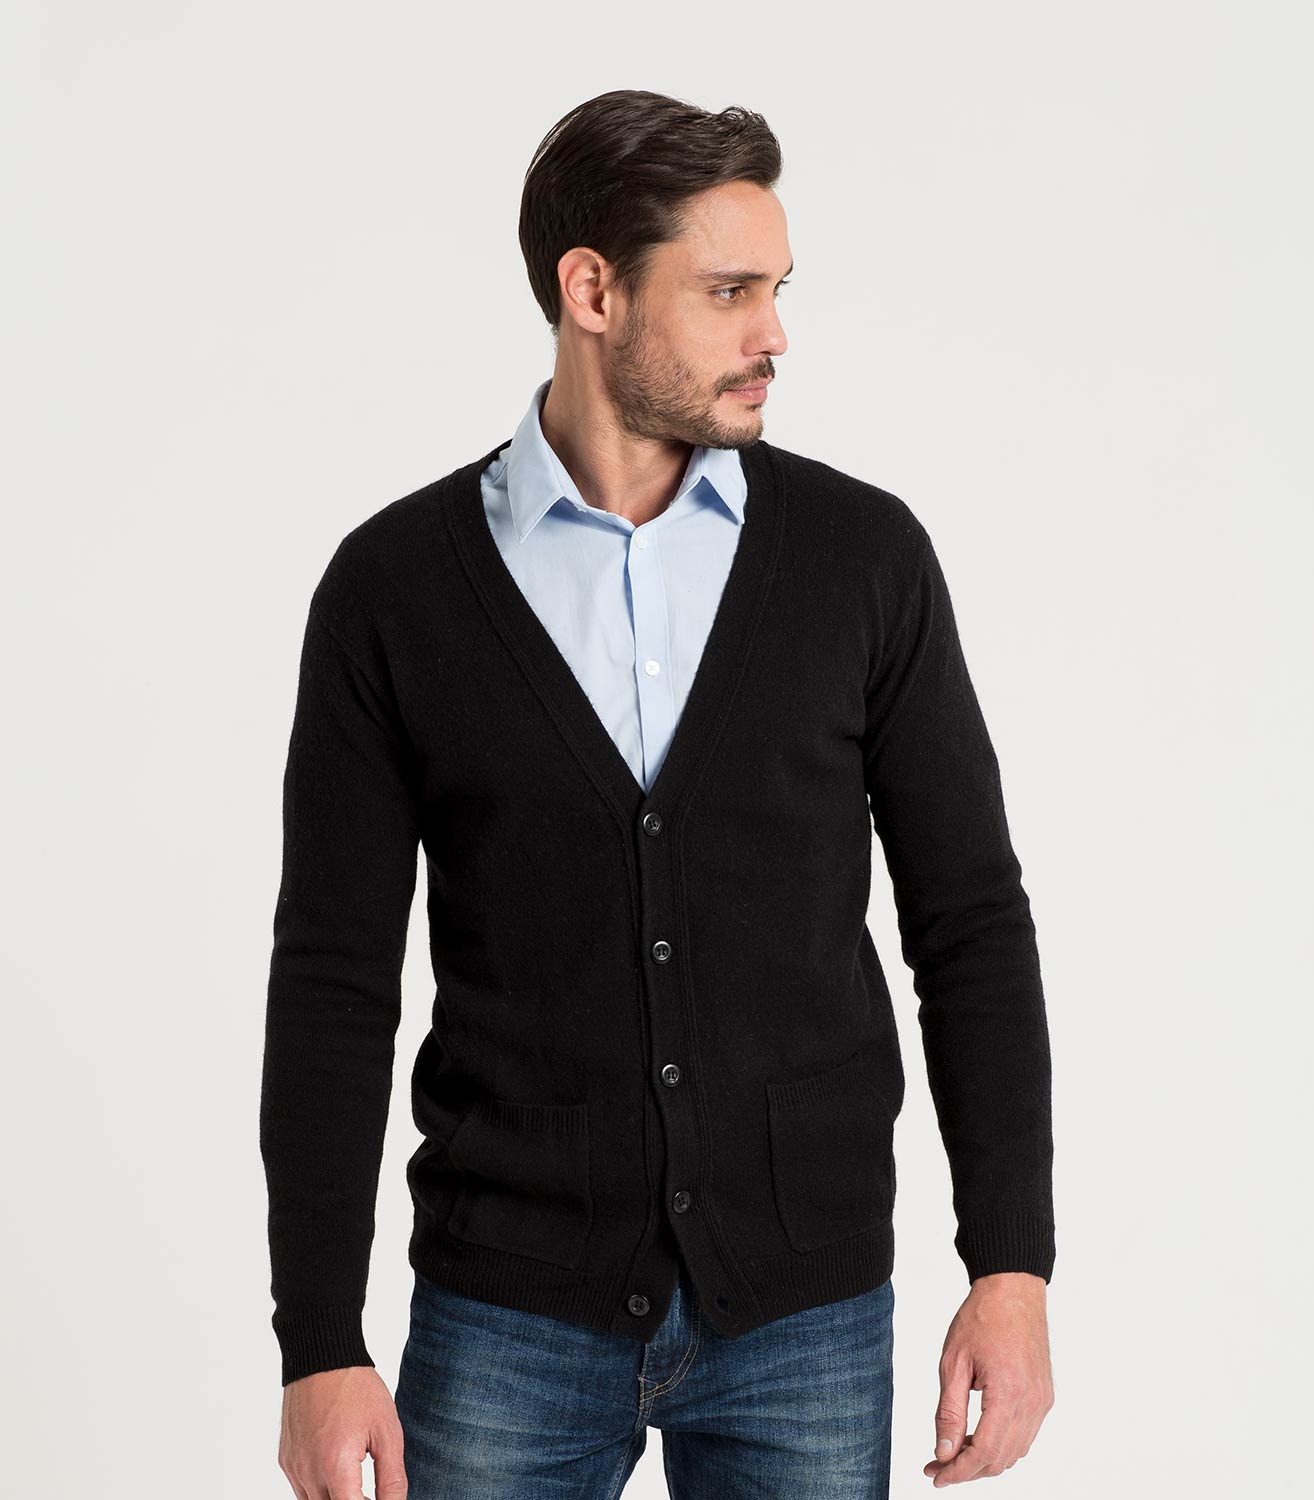 mens cardigans menu0027s v neck cardigan | woolovers xnpdruv